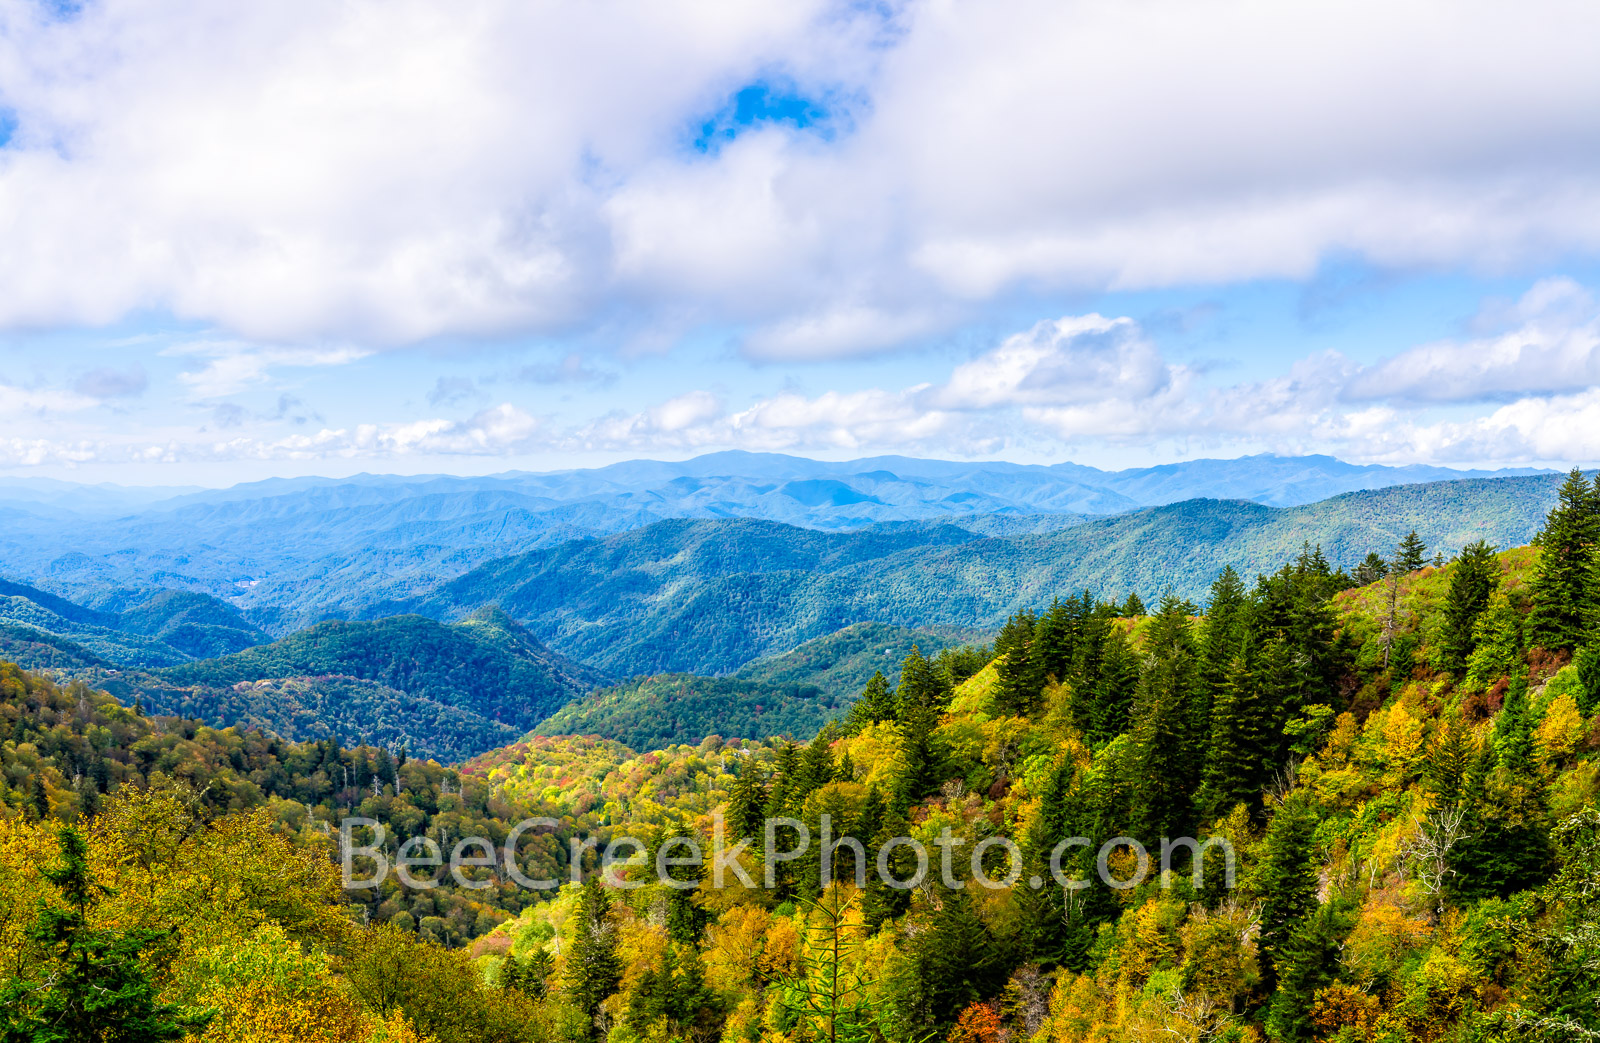 Fall Smoky Mountain Scenery - Off the Blue Ridge Parkway you can find some incredible scenery.  I can't tell you exactly where...